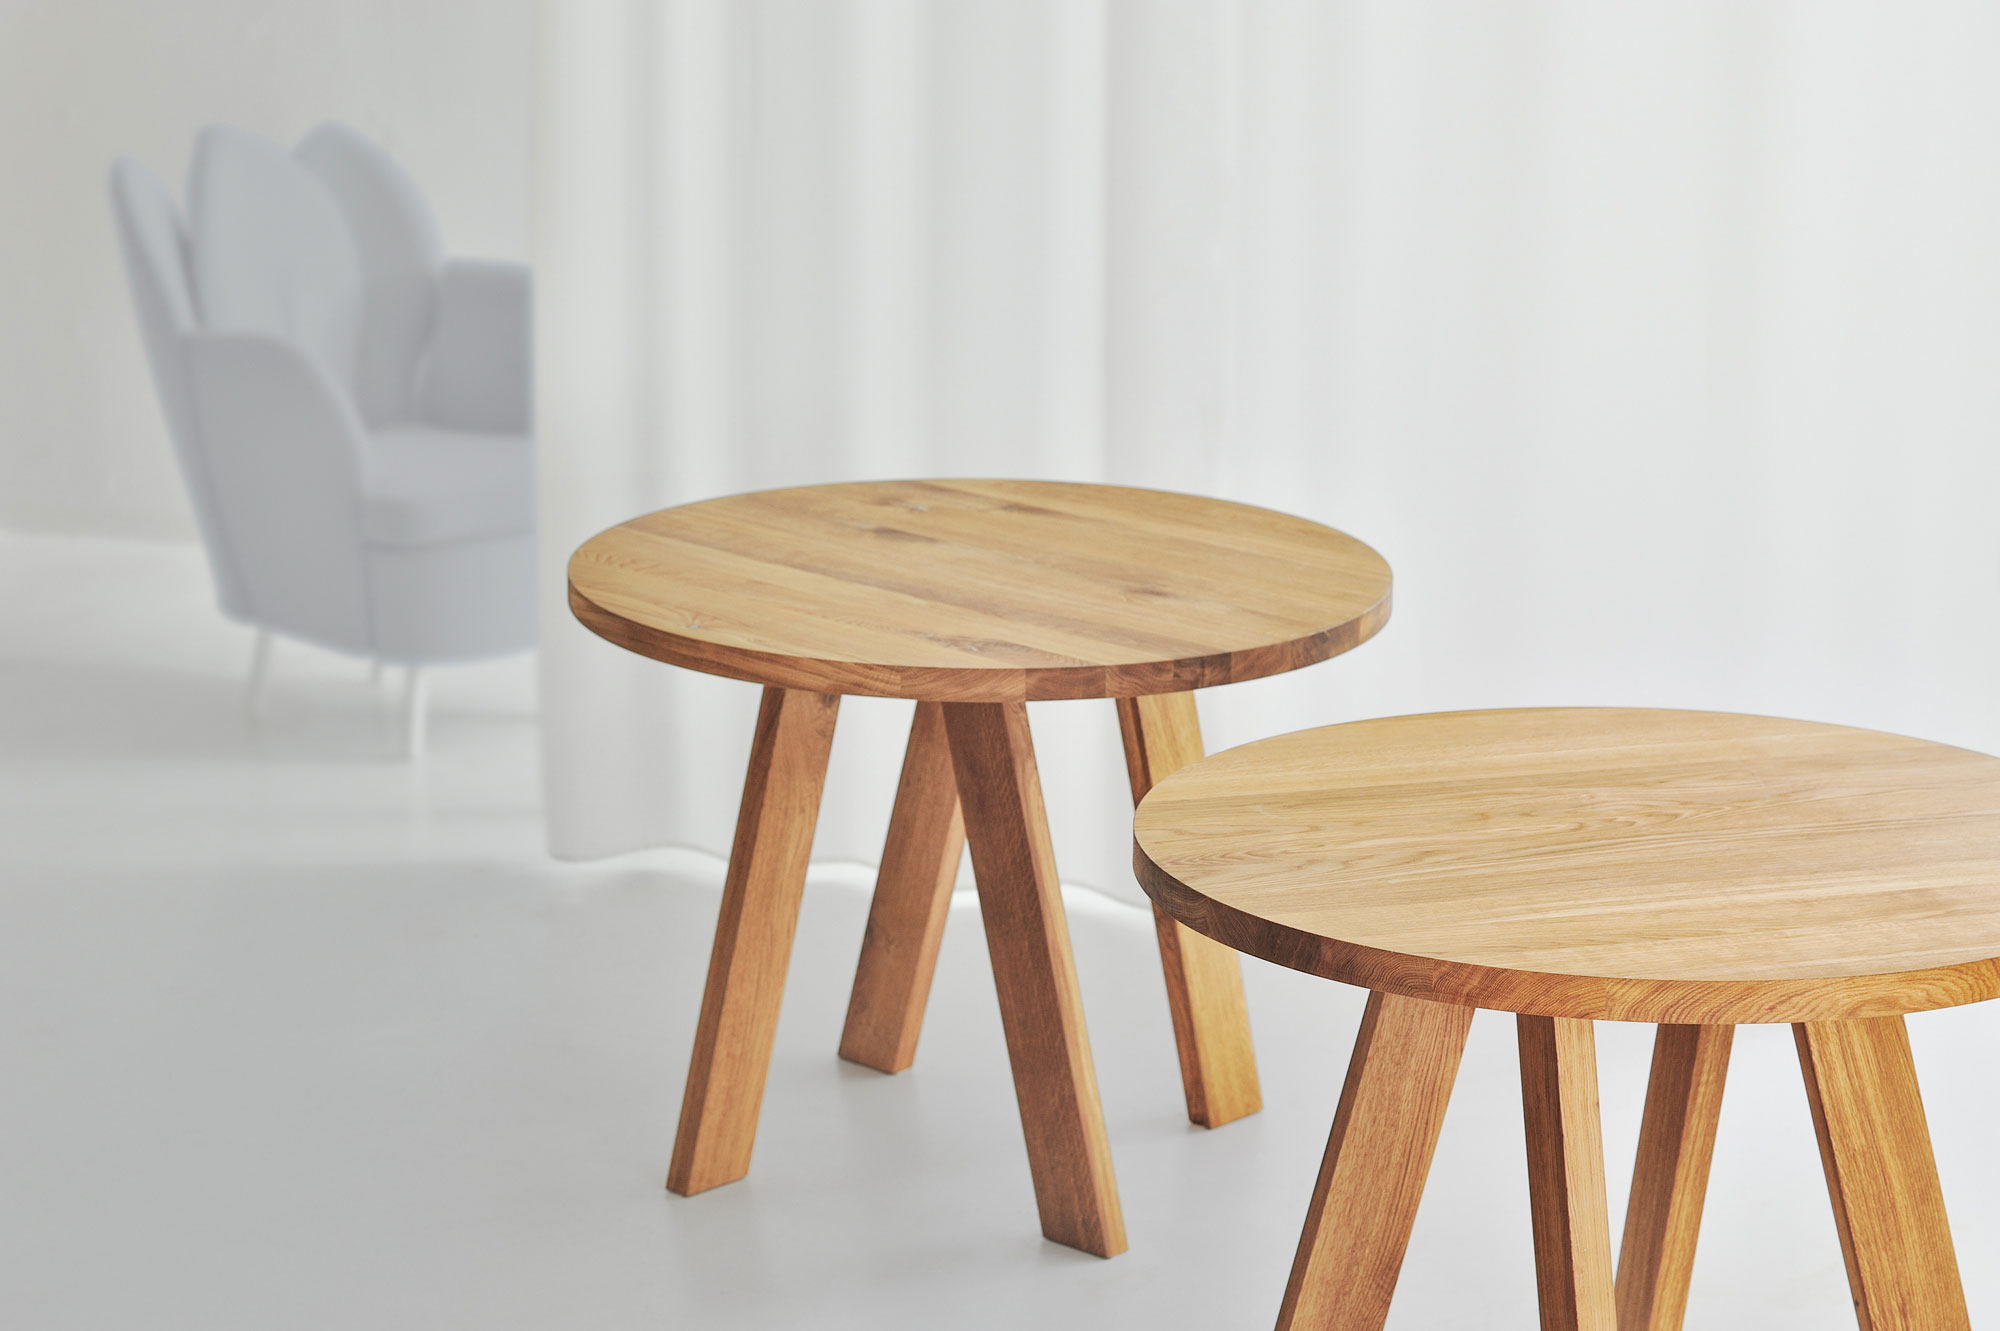 Designer table Round ZIRKEL 3598B custom made in solid wood by vitamin design